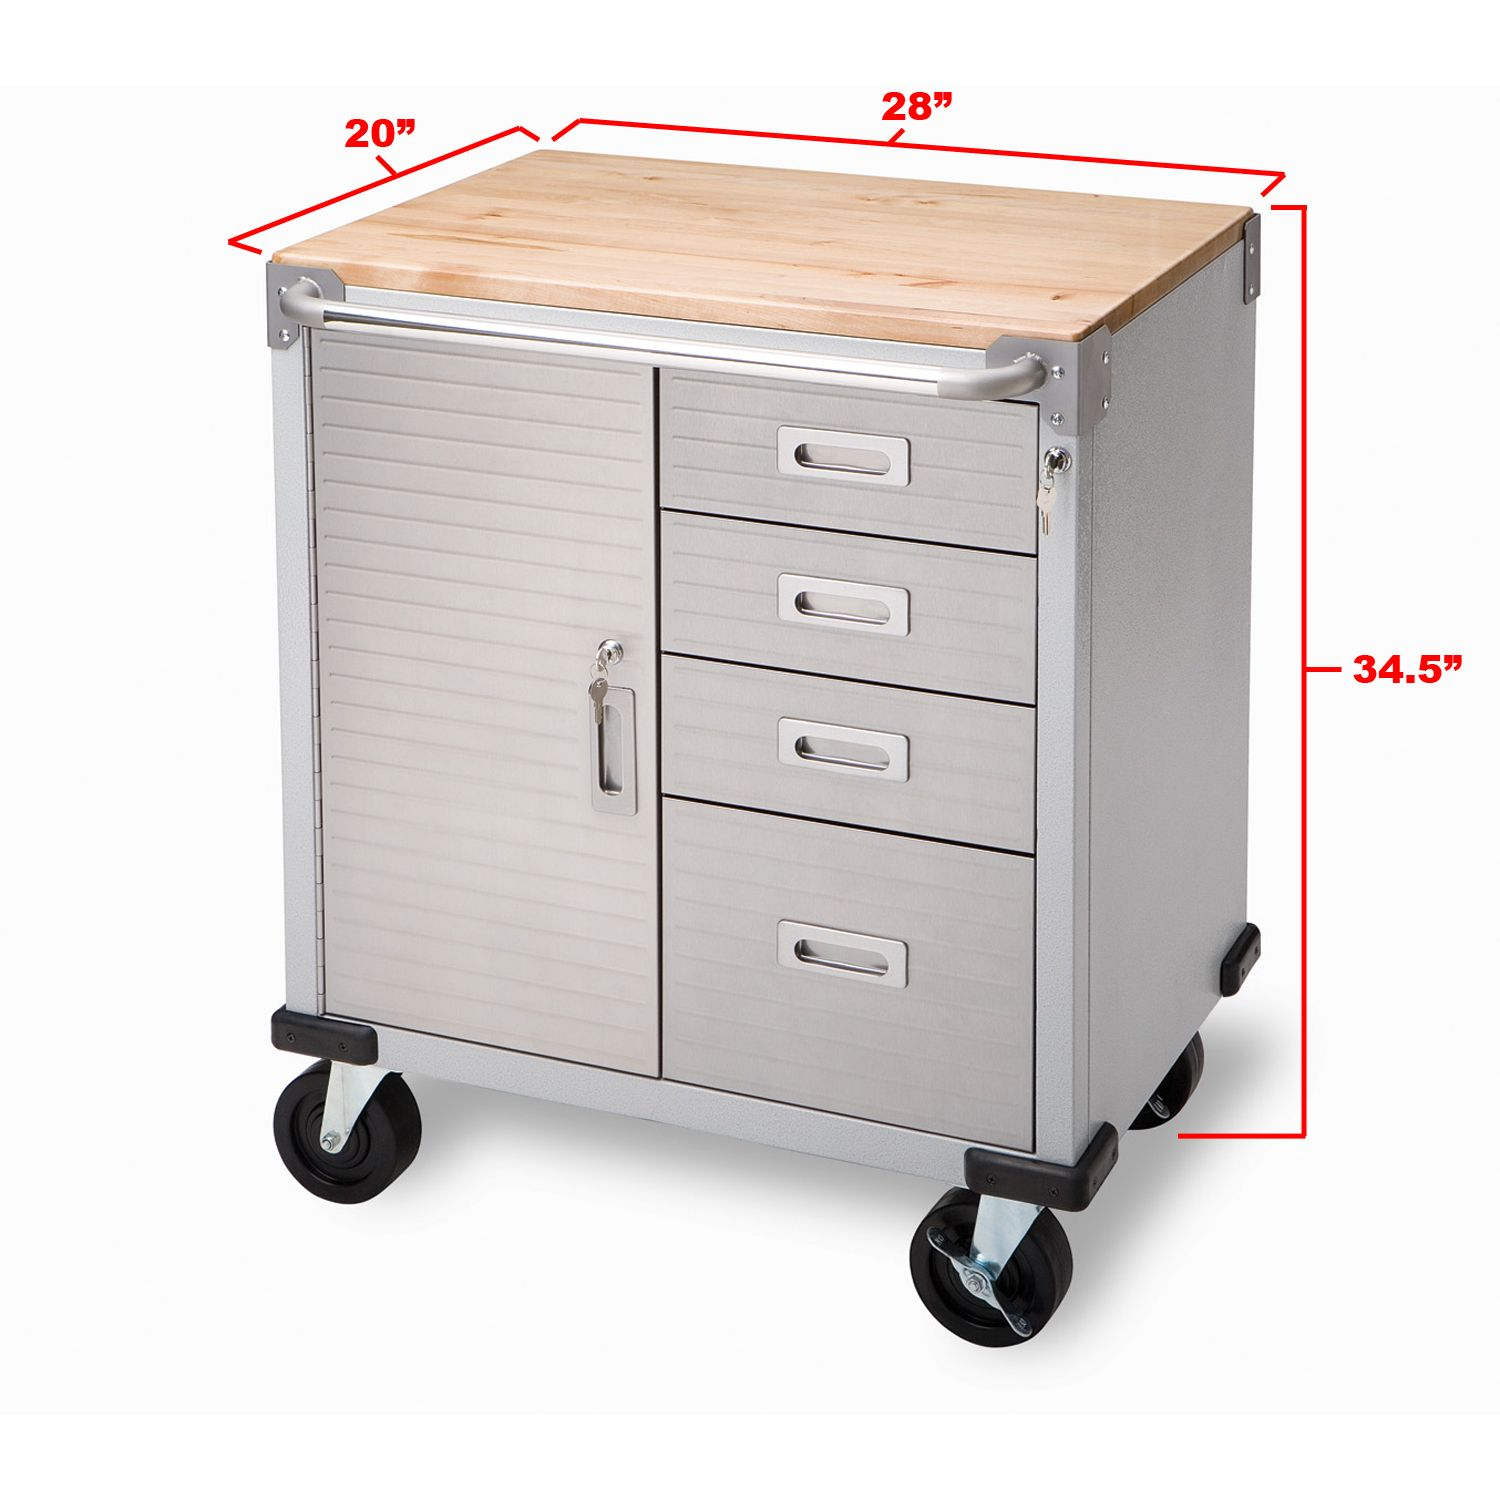 Ultrahd Rolling Cabinet With Drawers 28 Inch By 20 34 5